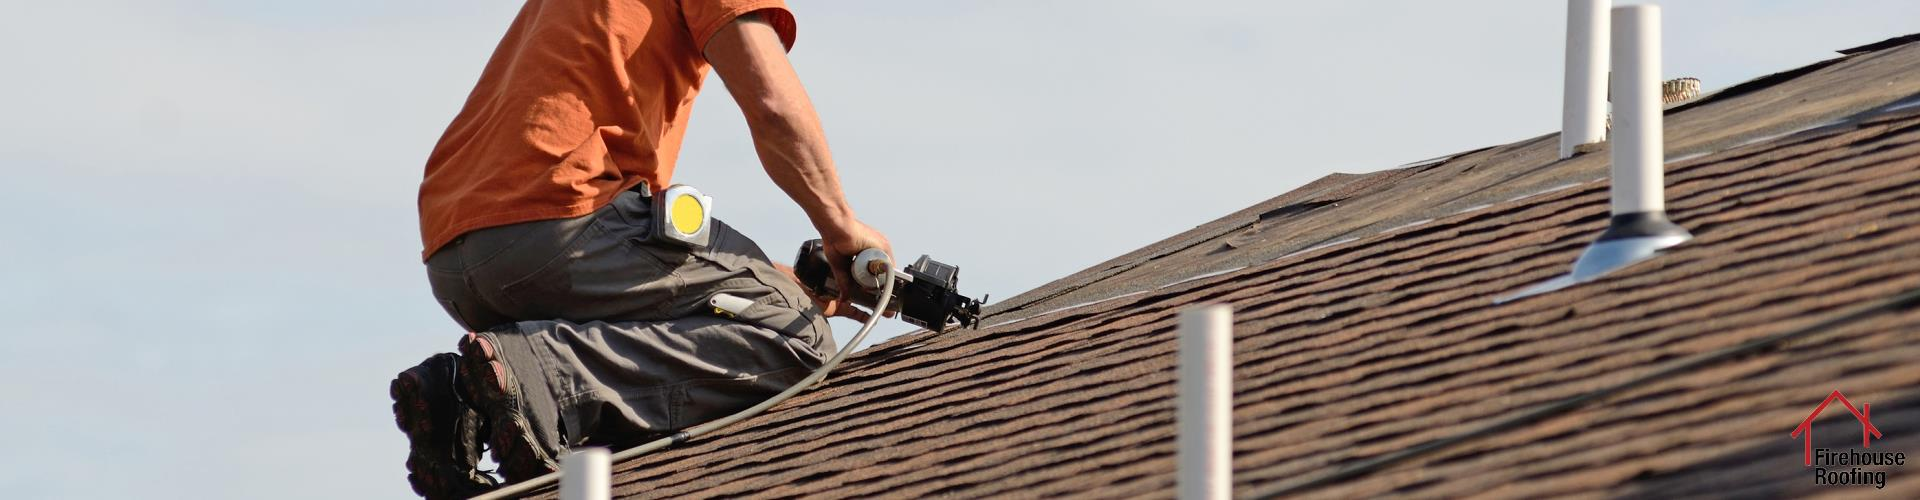 Firehouse roofing Contractors